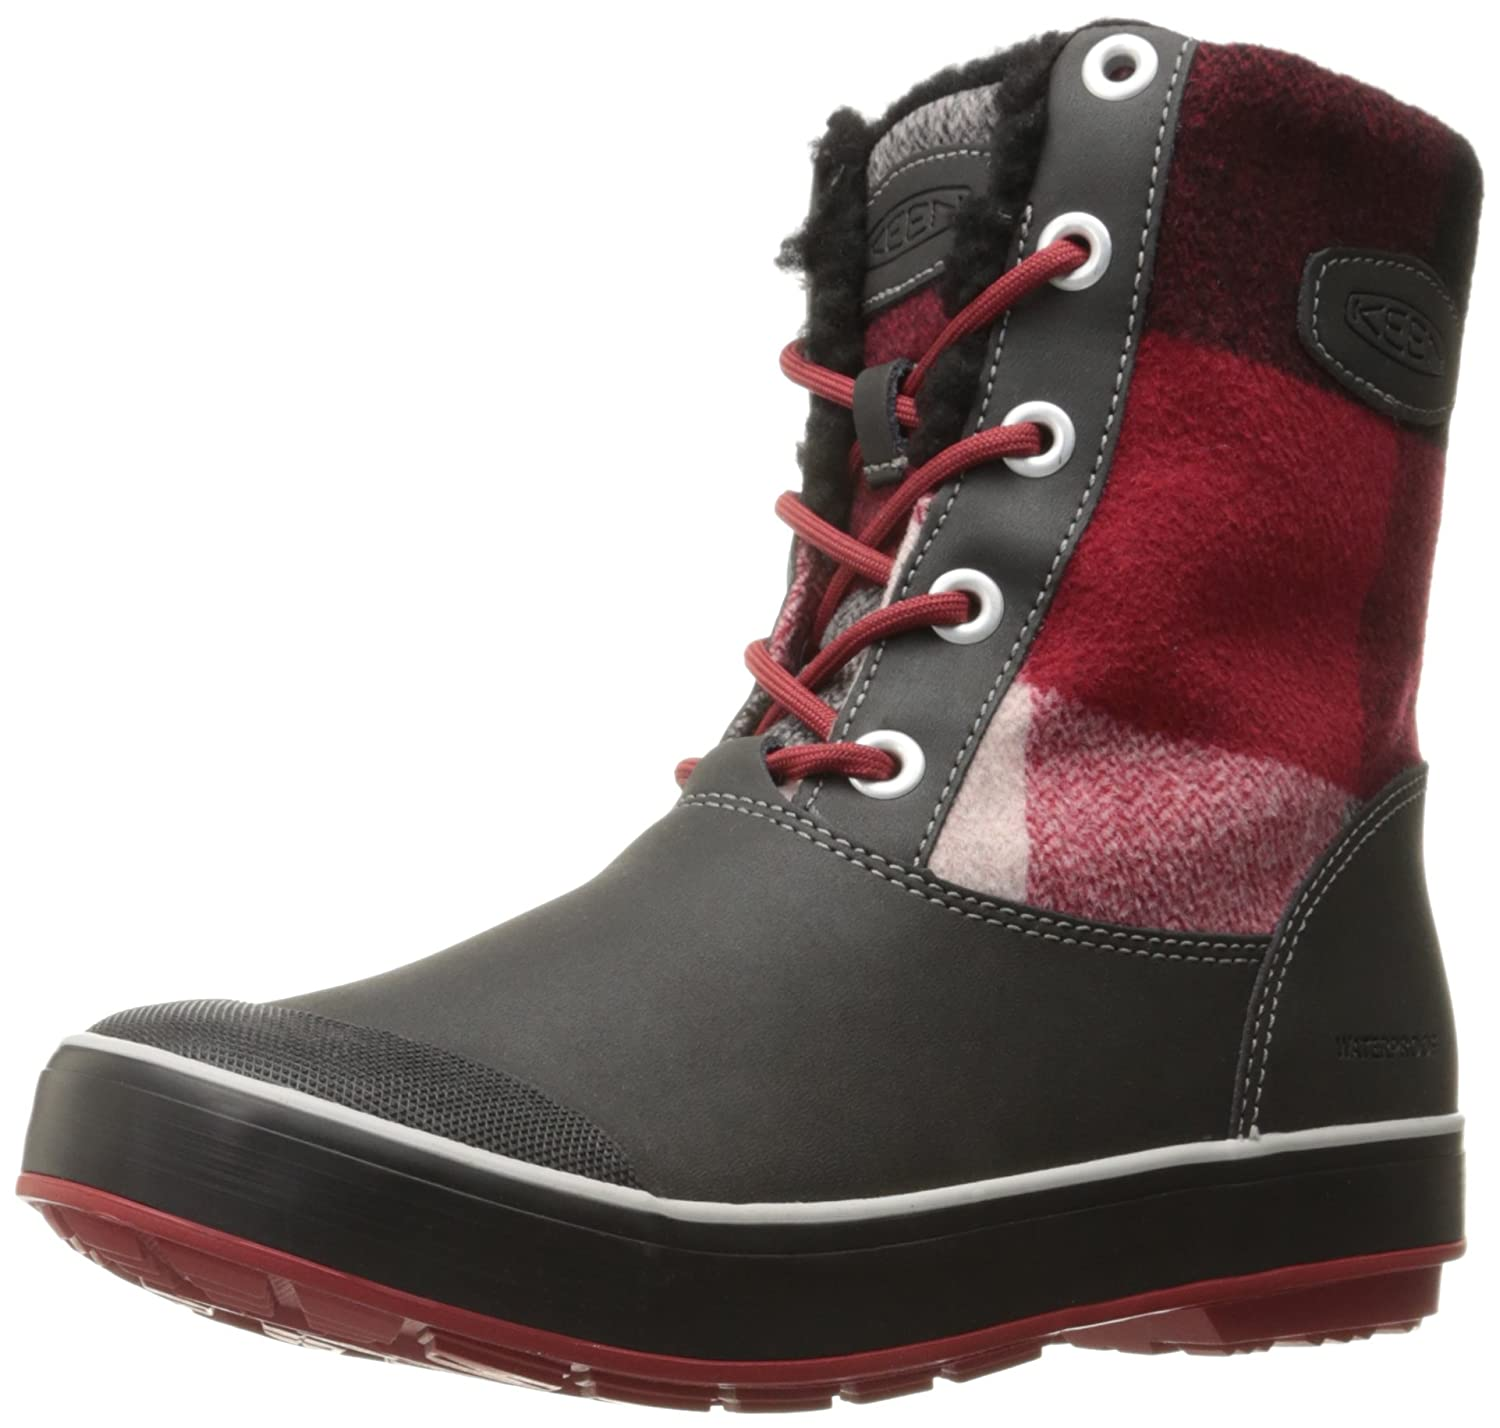 KEEN Women's Elsa Waterproof Winter Boot B01N53IOP5 9.5 M US|Black/Red Dahlia